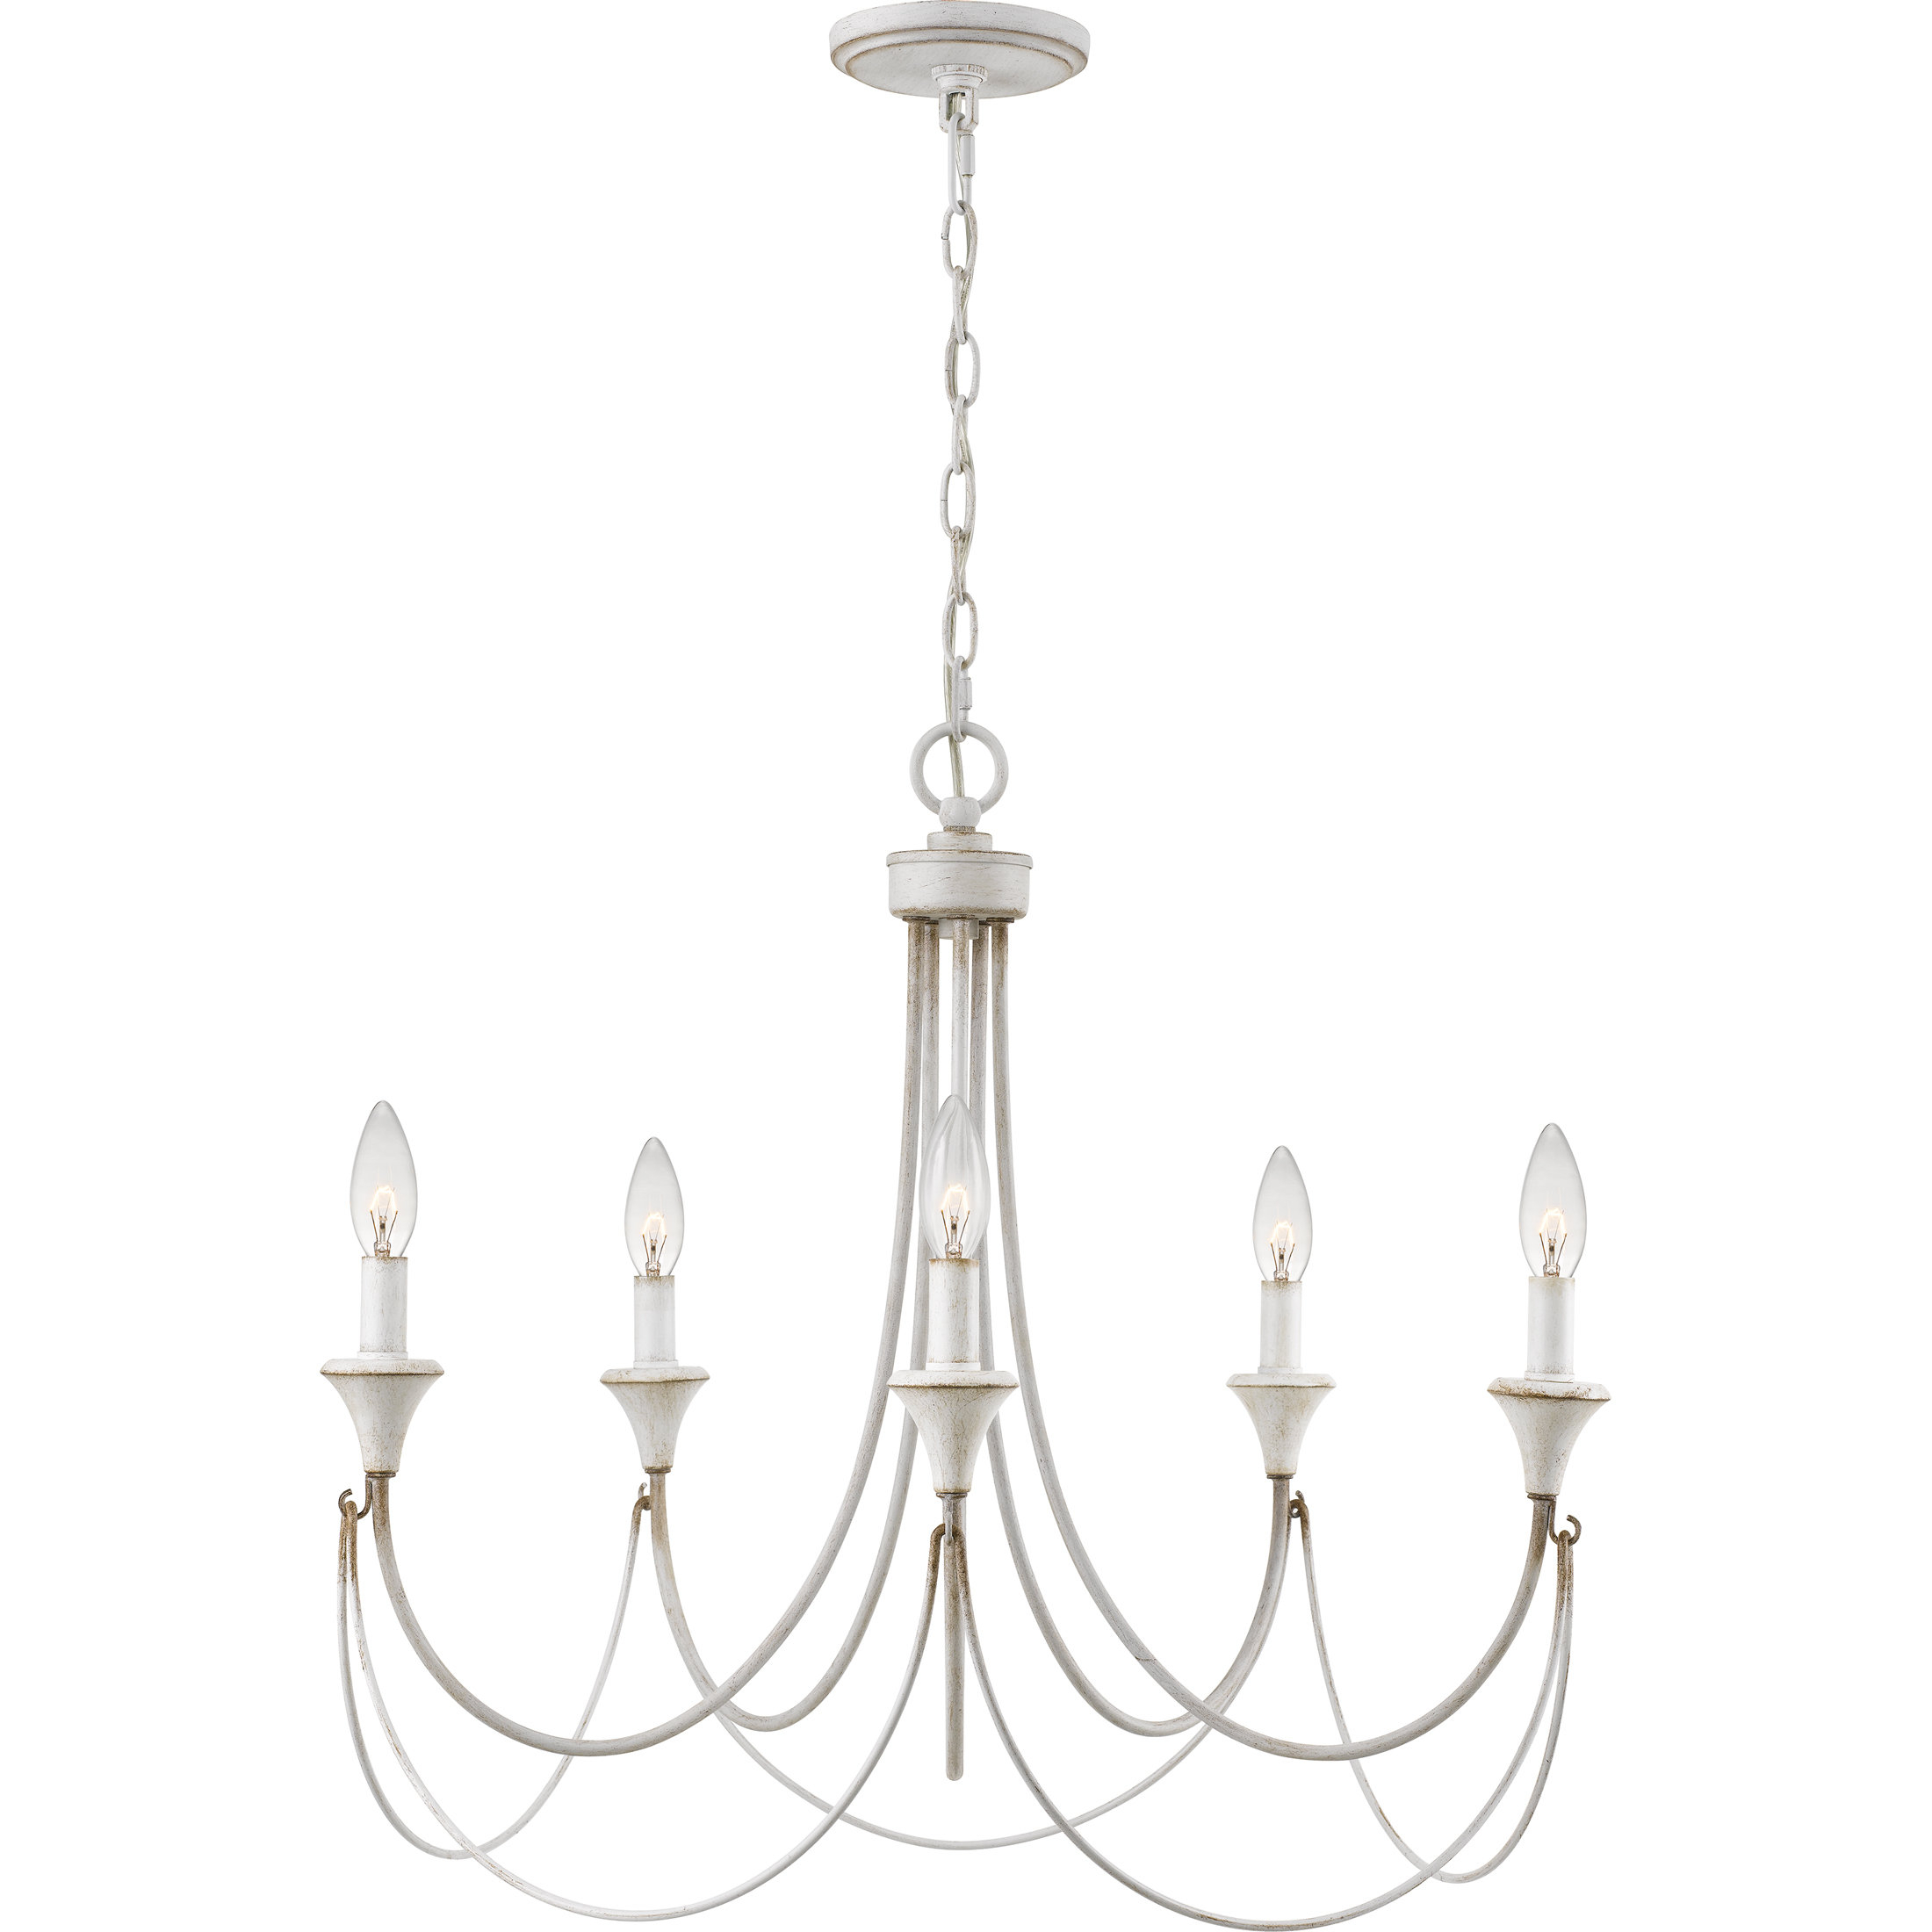 Breakwater Bay Walczak 5-Light Chandelier with Corneau 5-Light Chandeliers (Image 9 of 30)